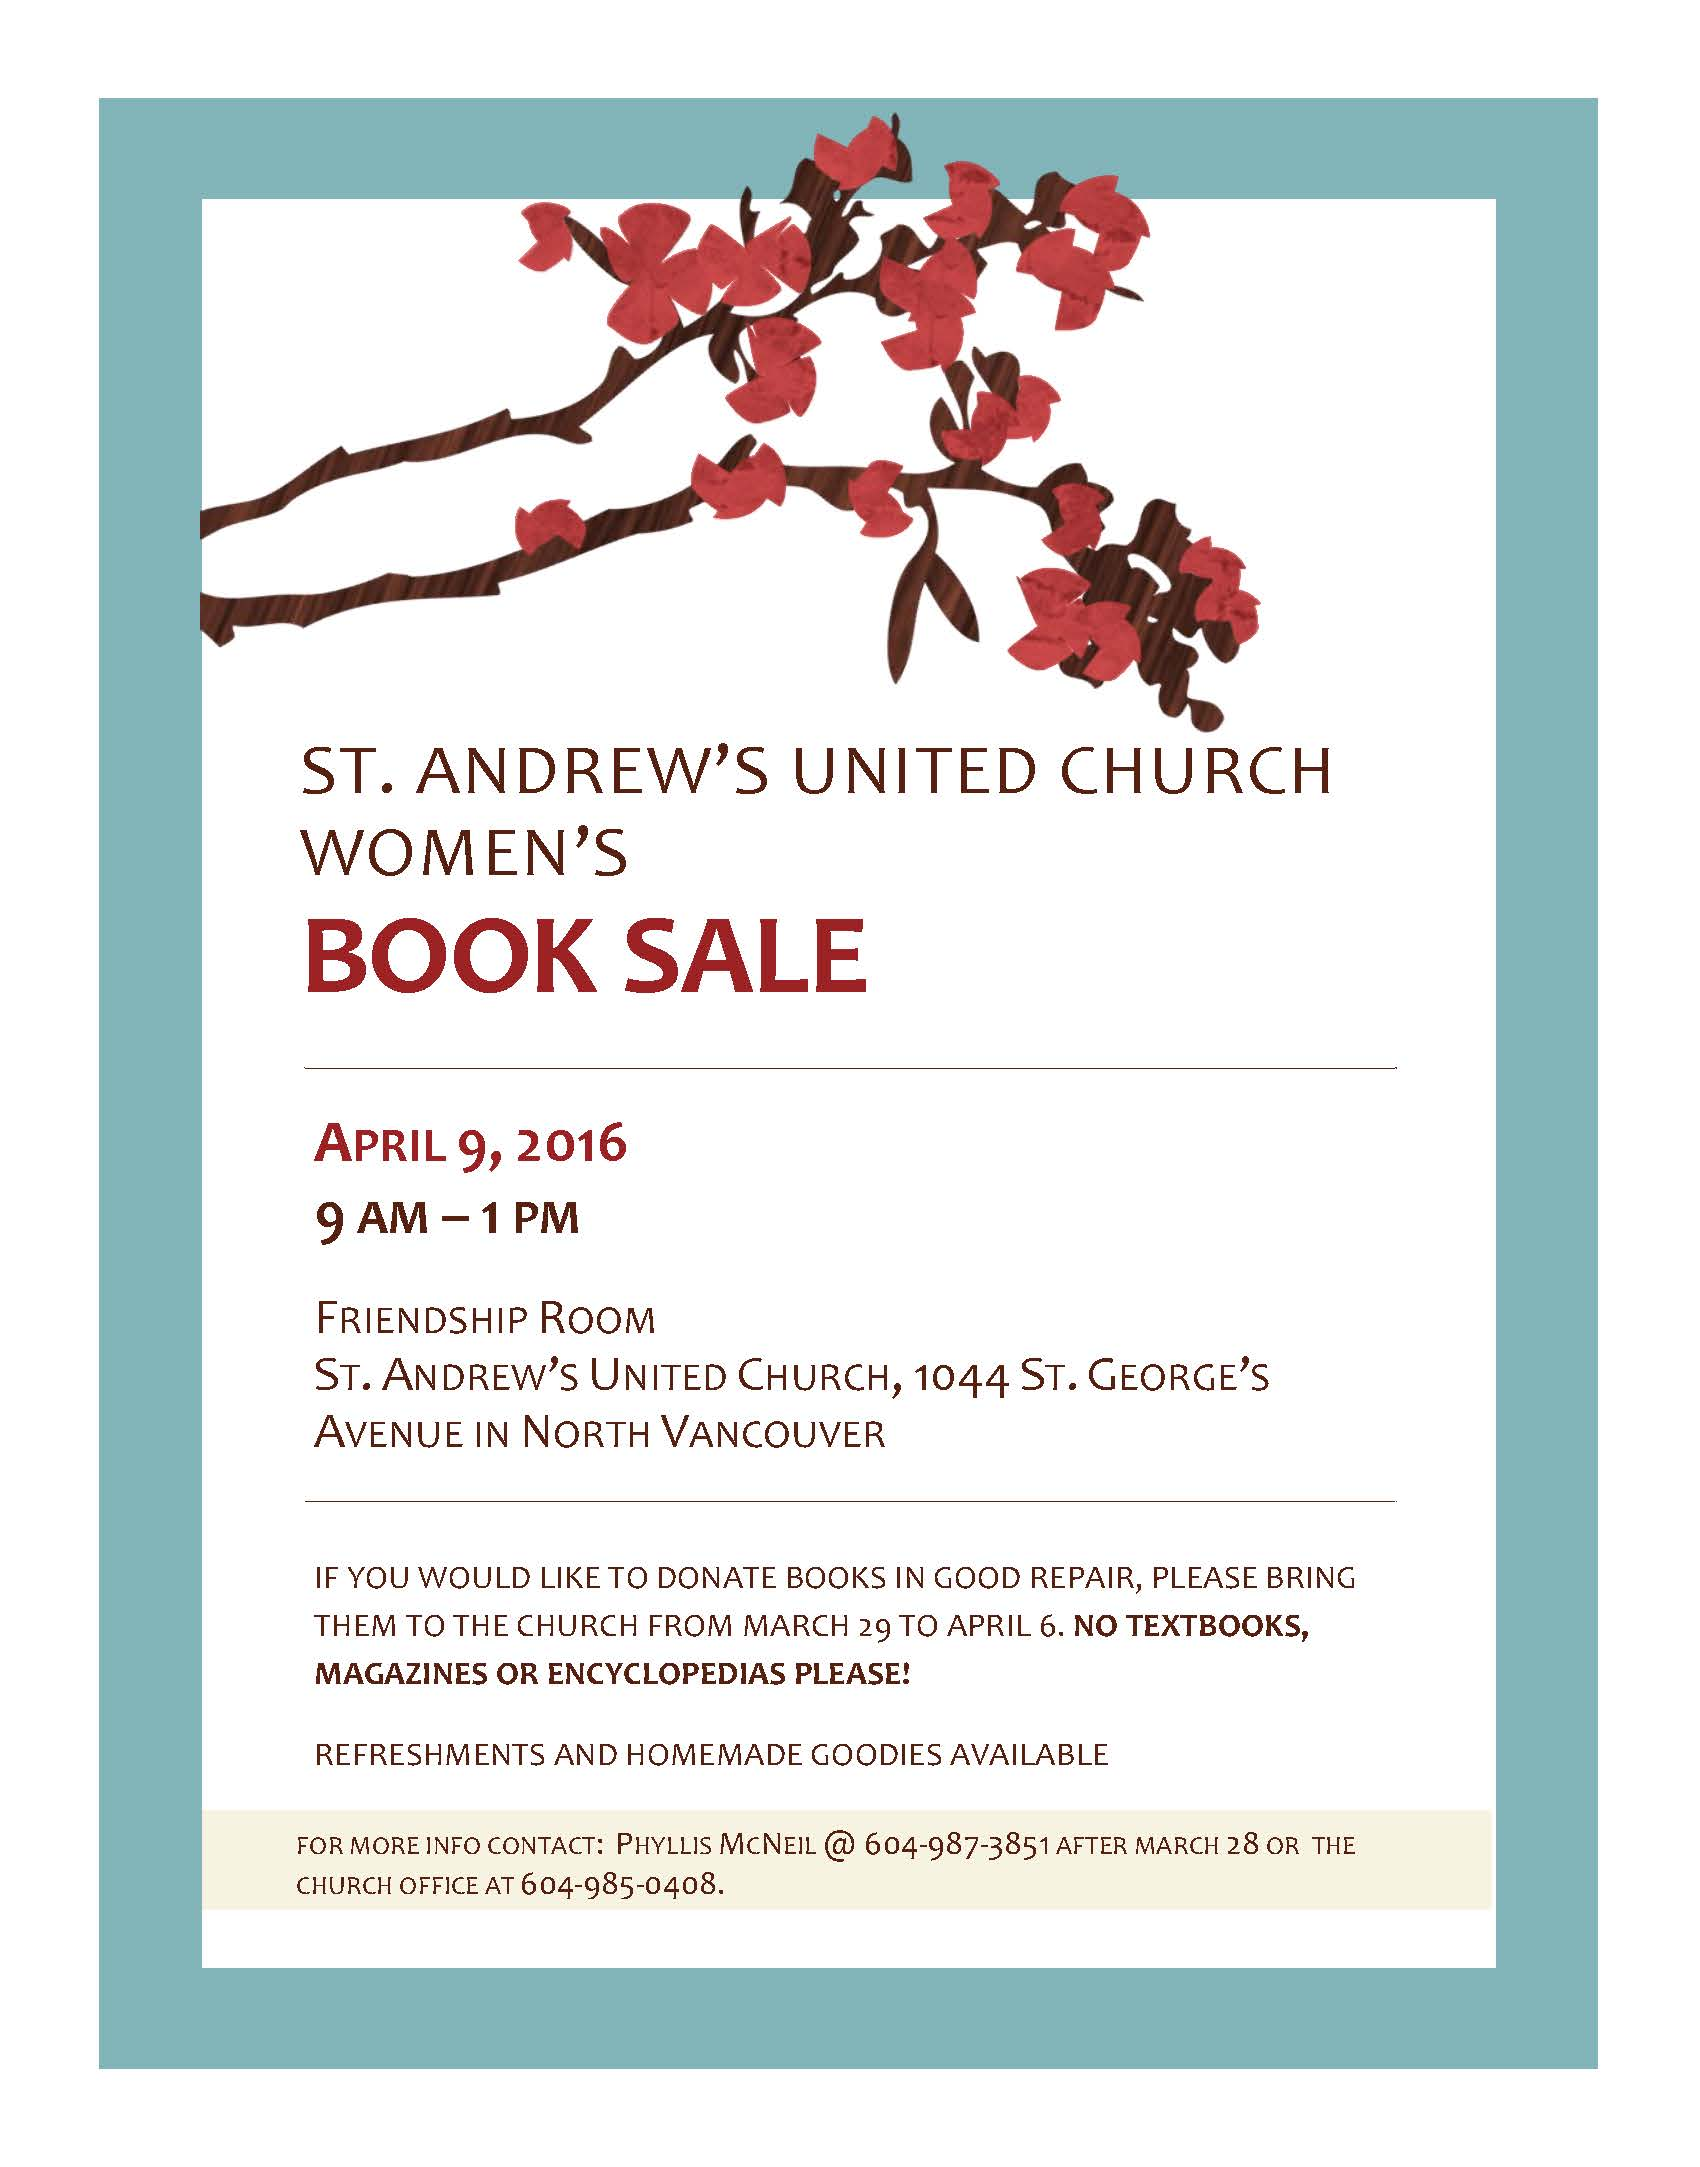 Women's Spring Book Sale at St. Andrew's United Church North Vancouver